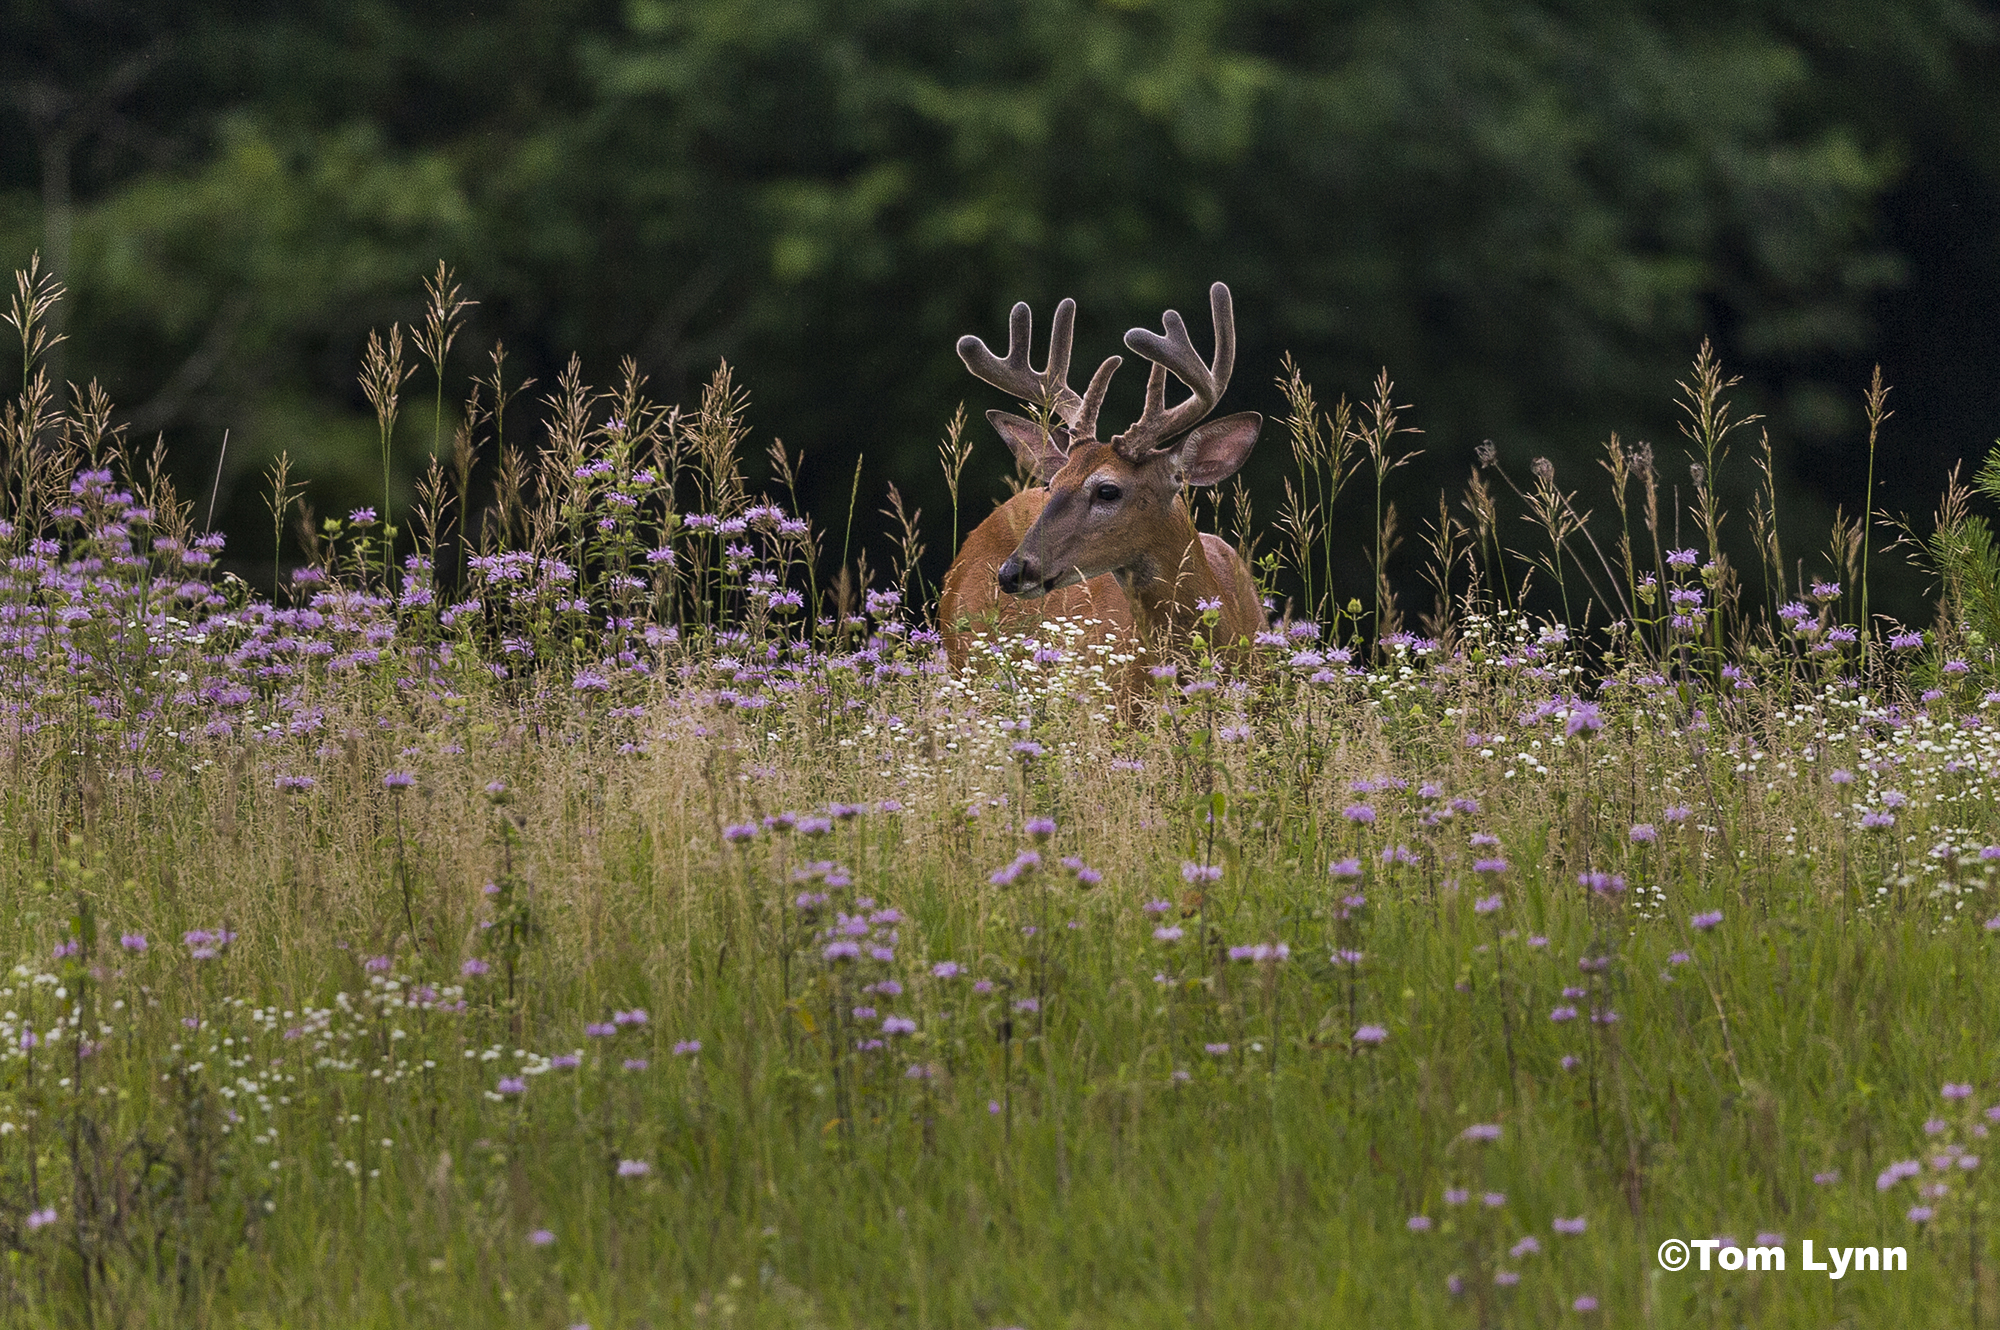 A young buck standing in a field of tall grass and wild flowers